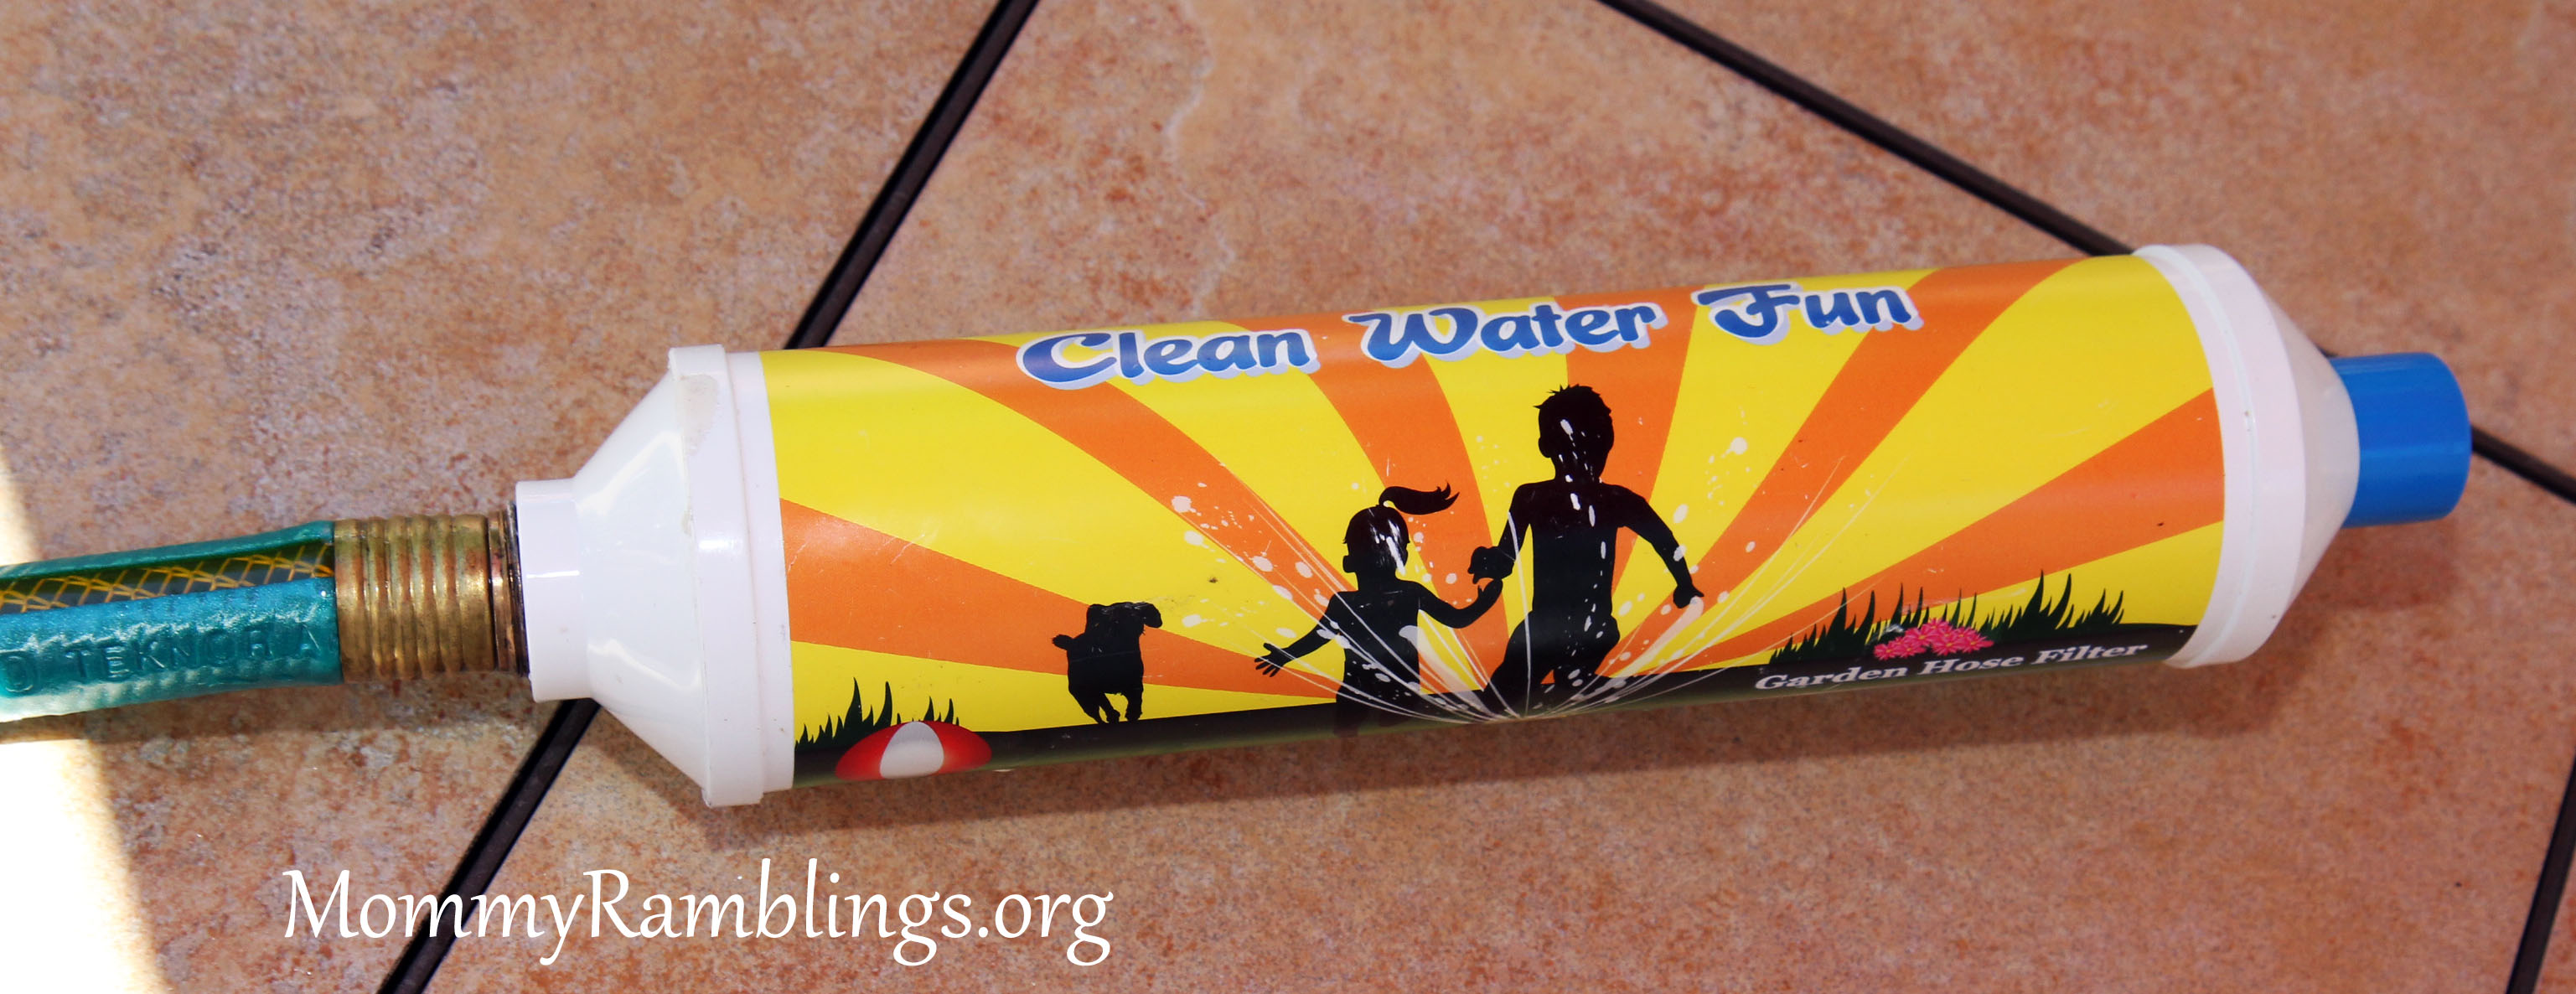 Clean Water Fun Garden Hose Filter Review Giveaway